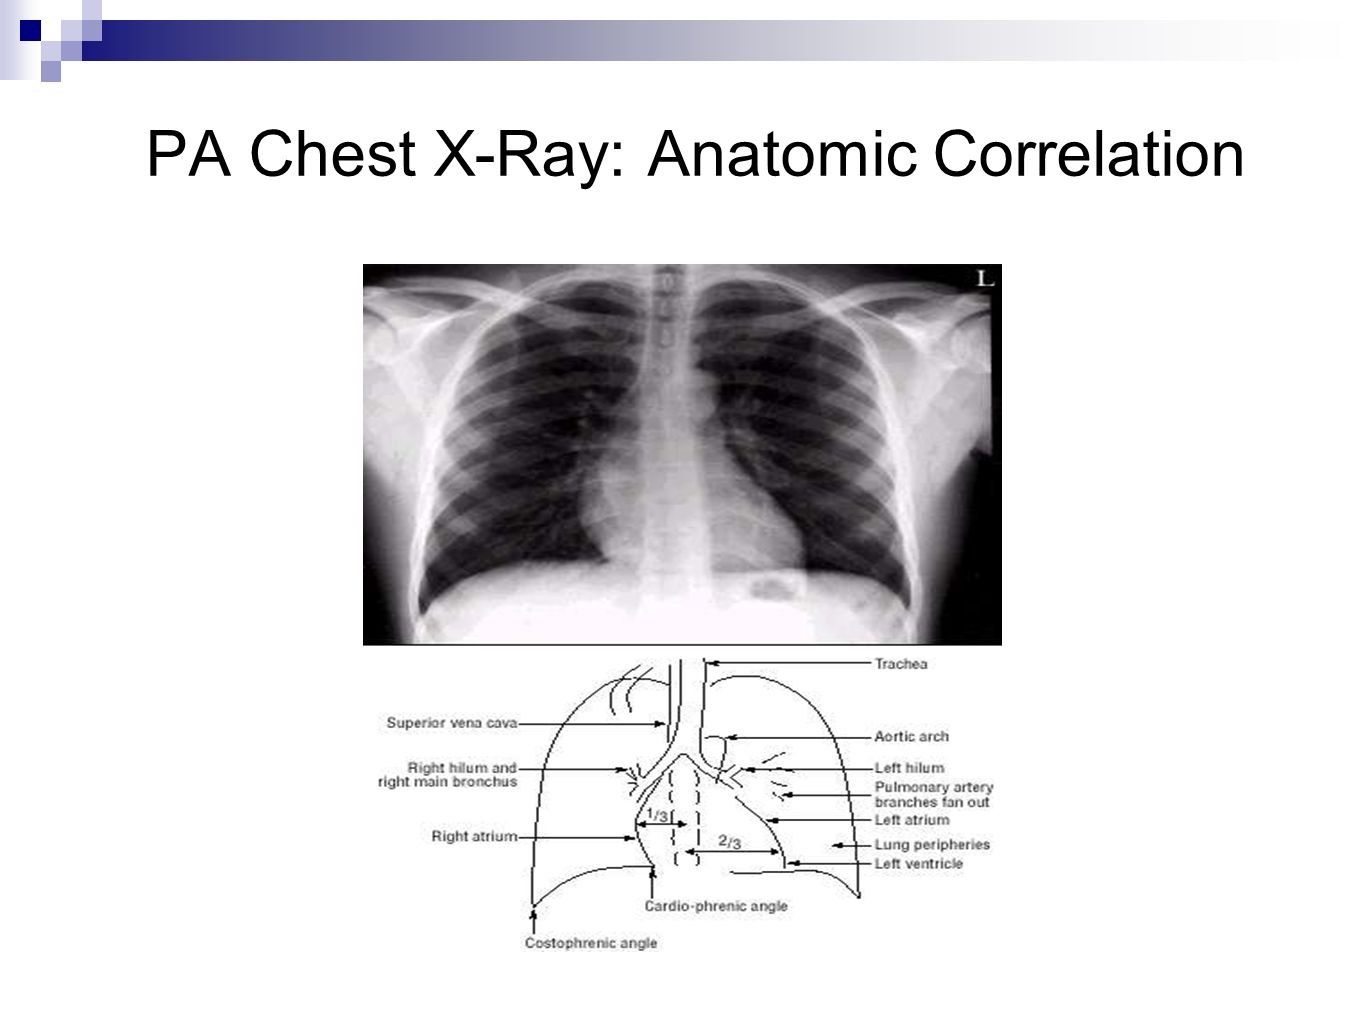 PA Chest X-Ray: Anatomic Correlation